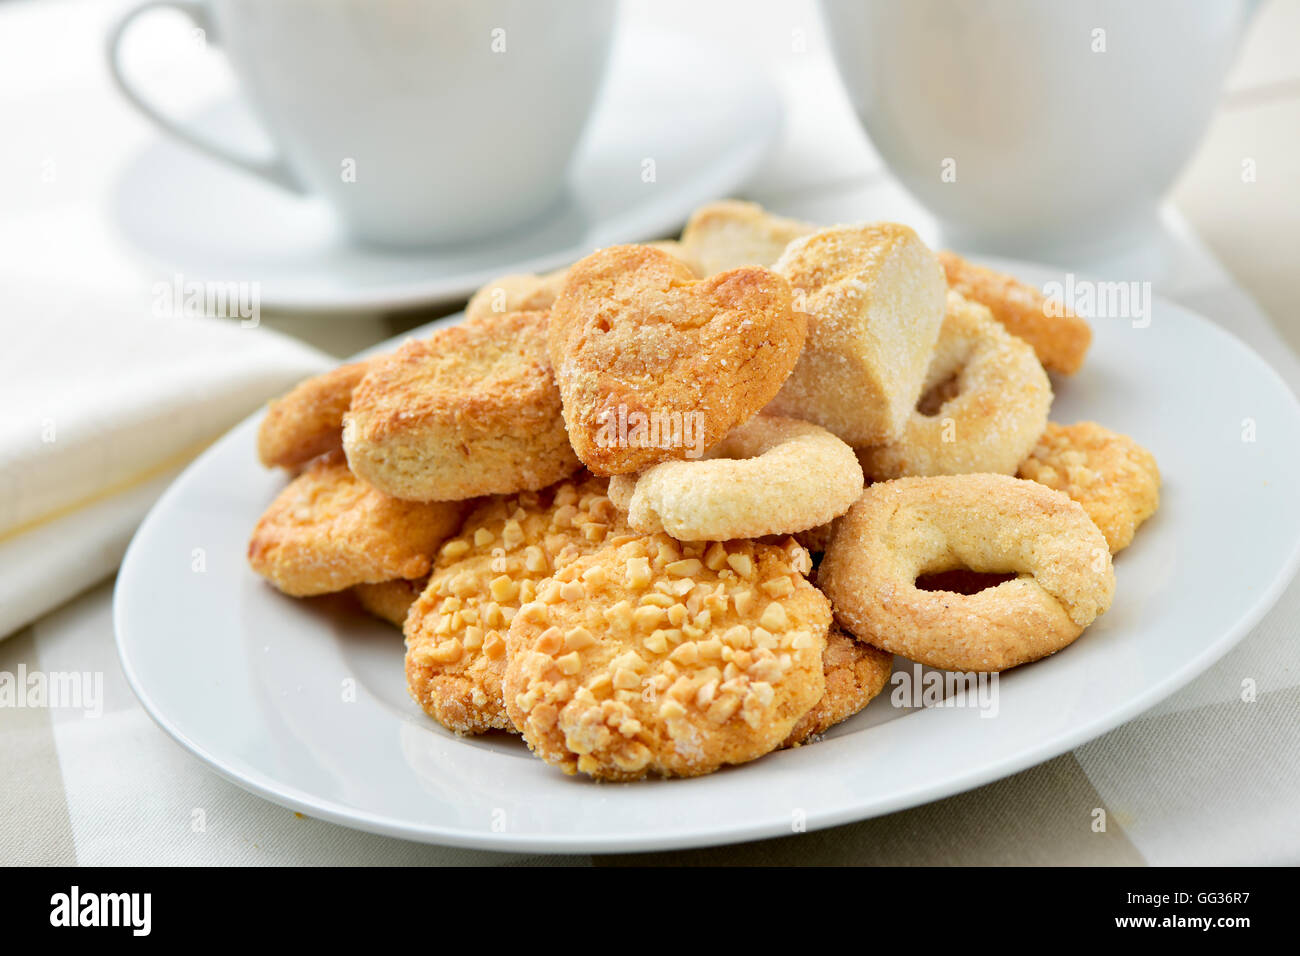 closeup of an assortment of different shortbread biscuits in a white plate, on a set table with some cups of tea - Stock Image